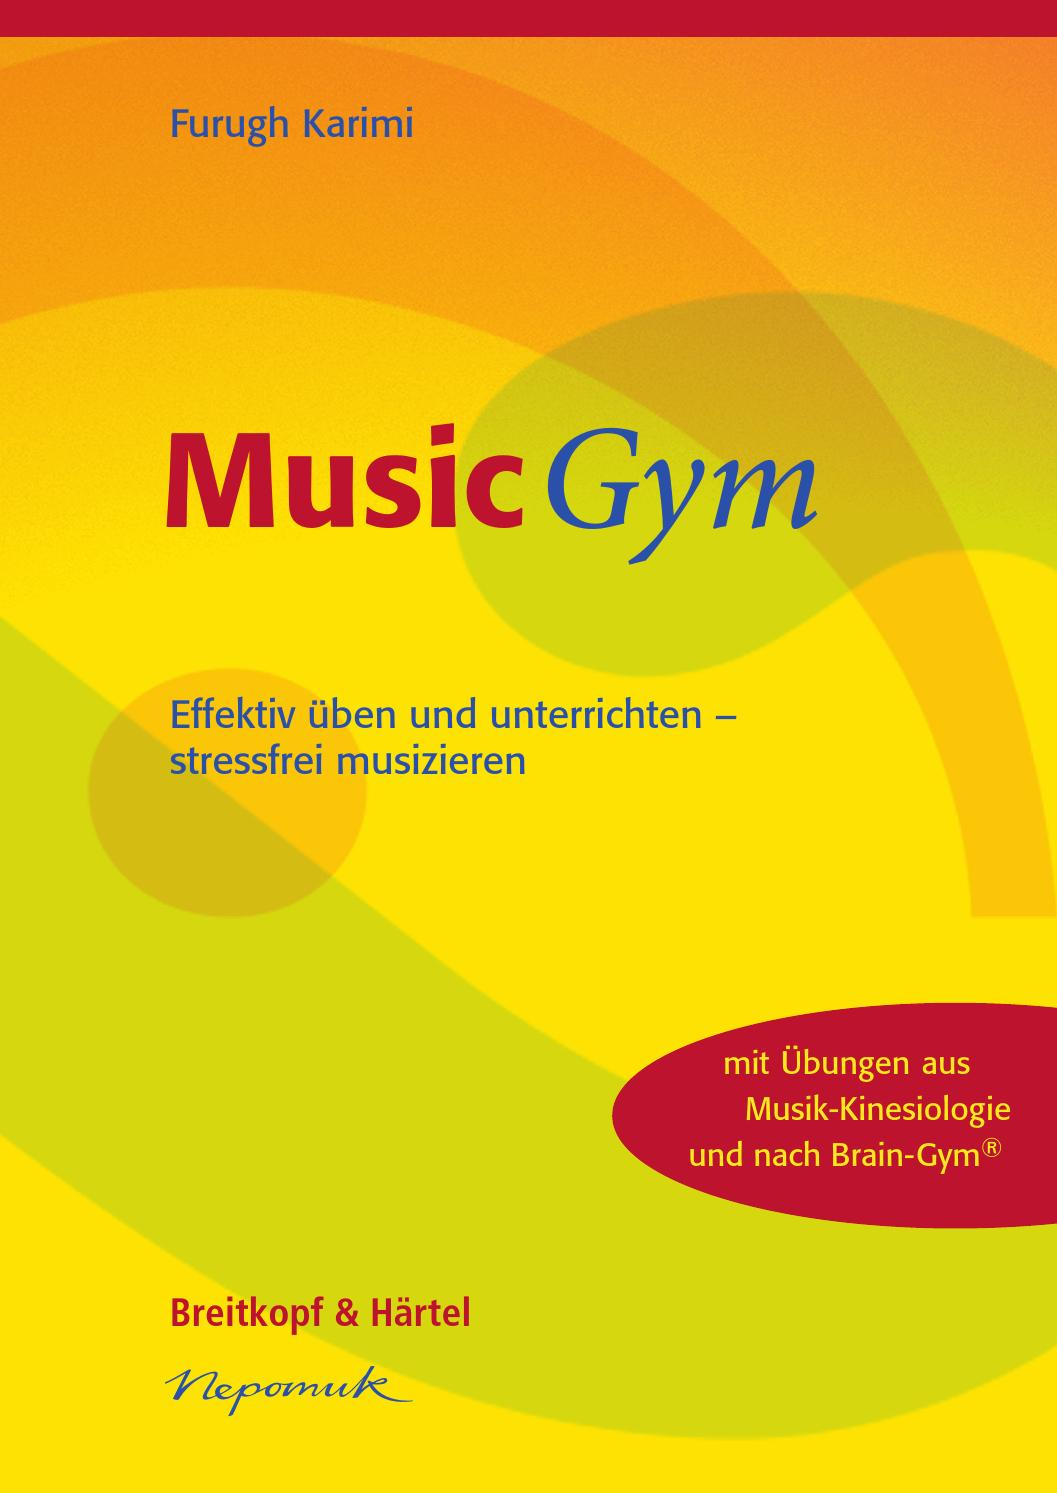 MN 954 - Music Gym by Breitkopf & Härtel - issuu